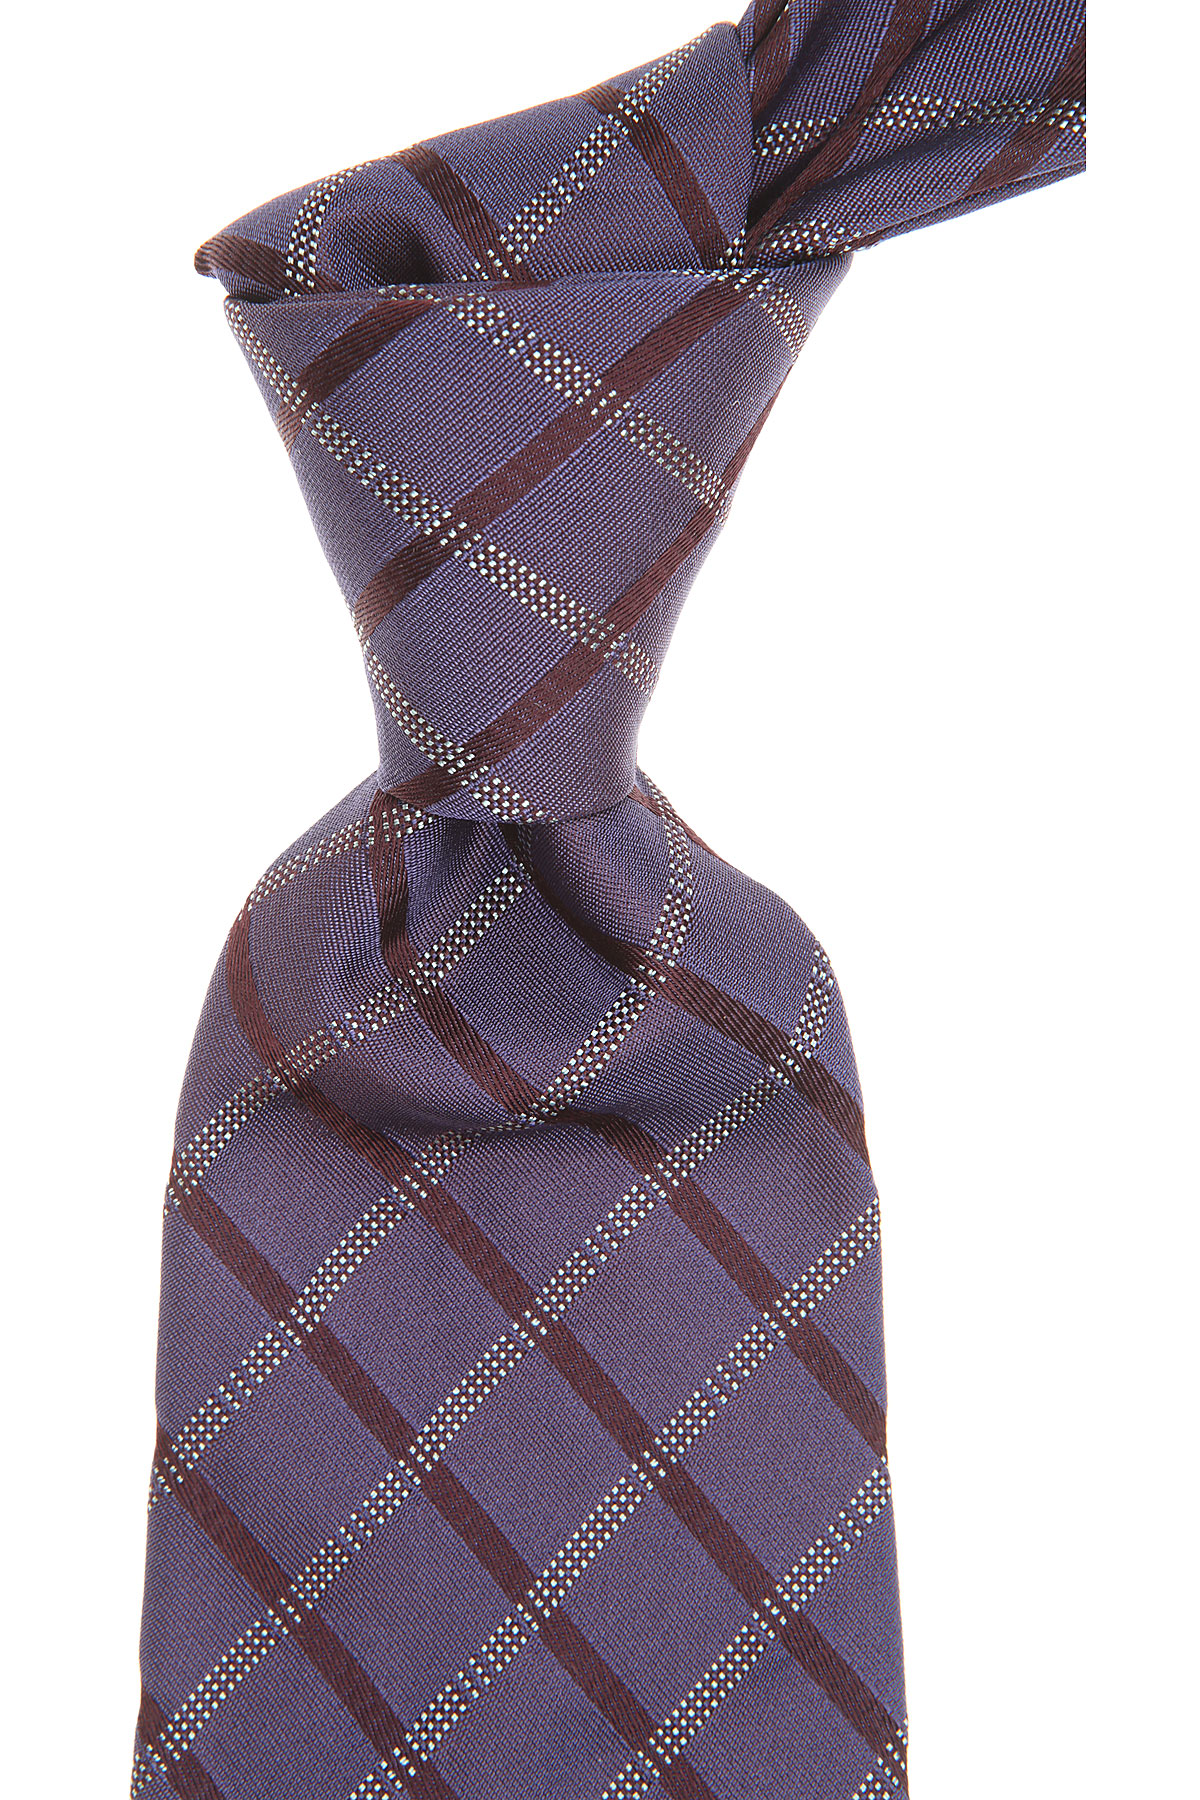 S.T. Dupont Ties On Sale, Plum, Silk, 2019